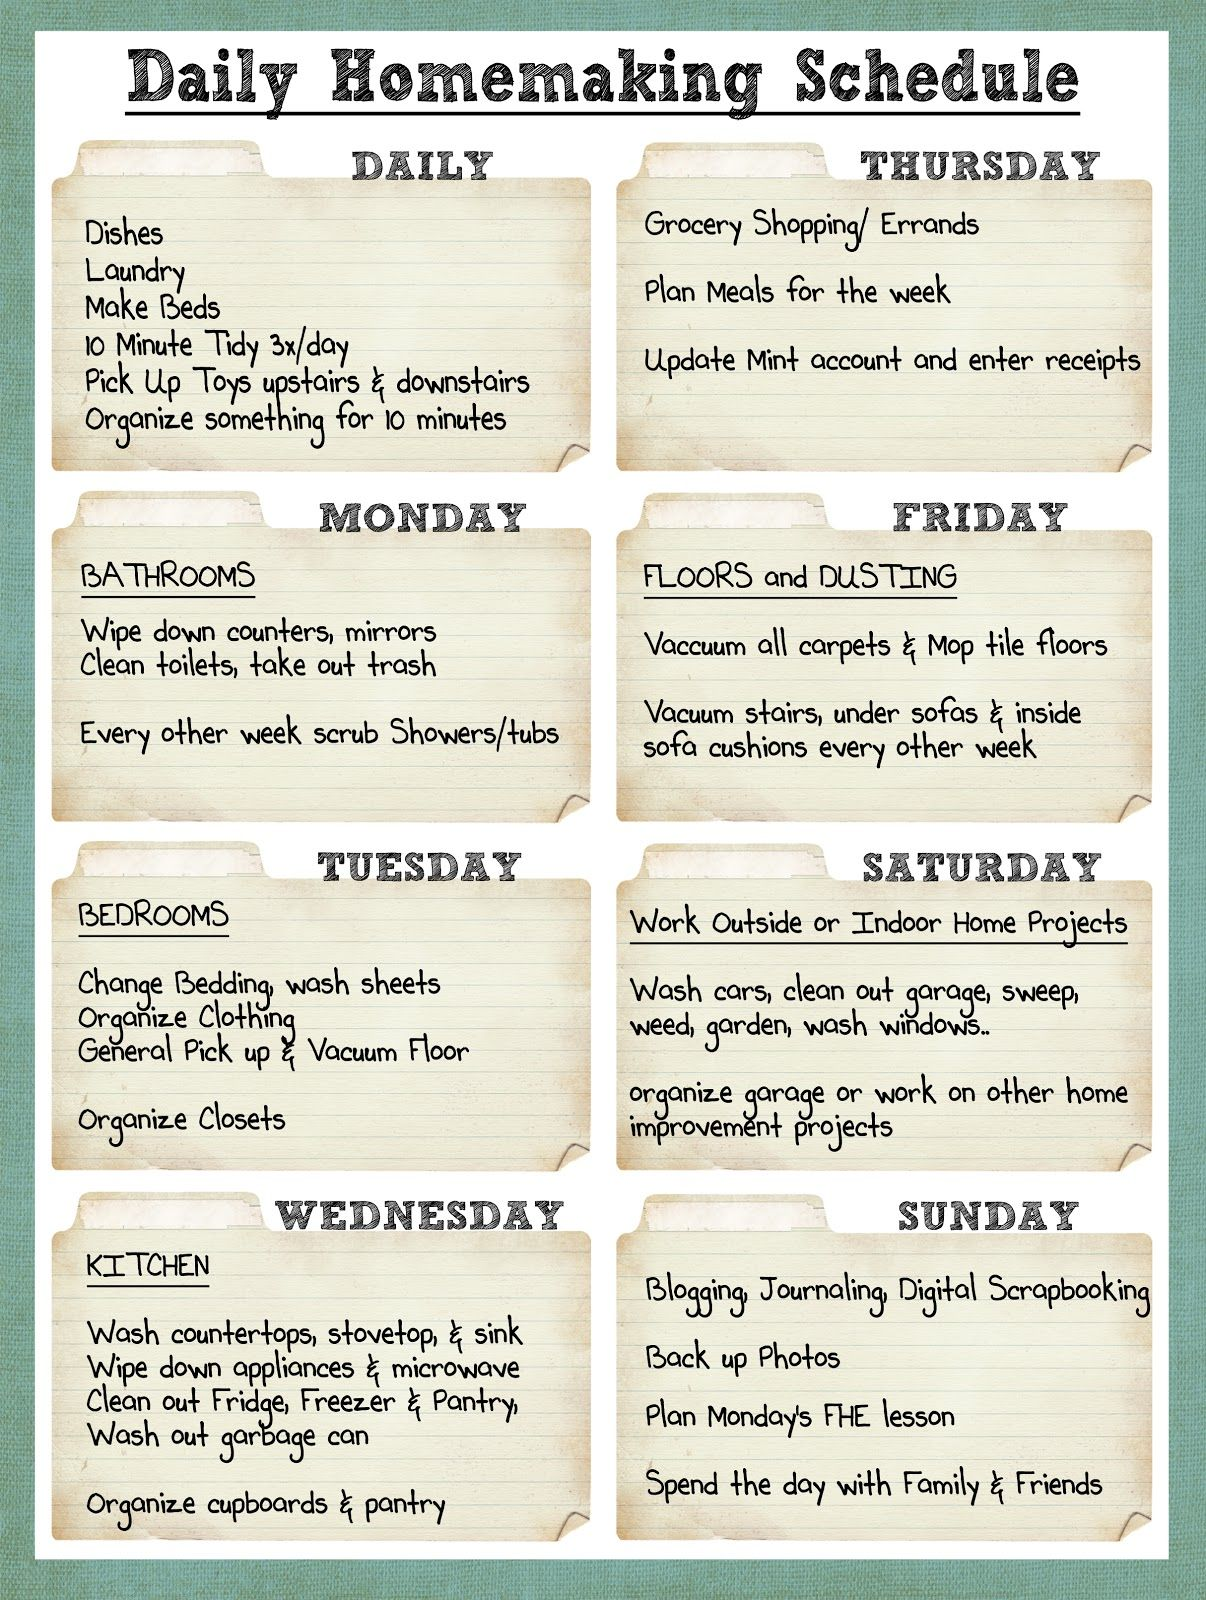 DailyHomemakingSchedulejpg 1206 1600 pixels – Cleaning Schedule